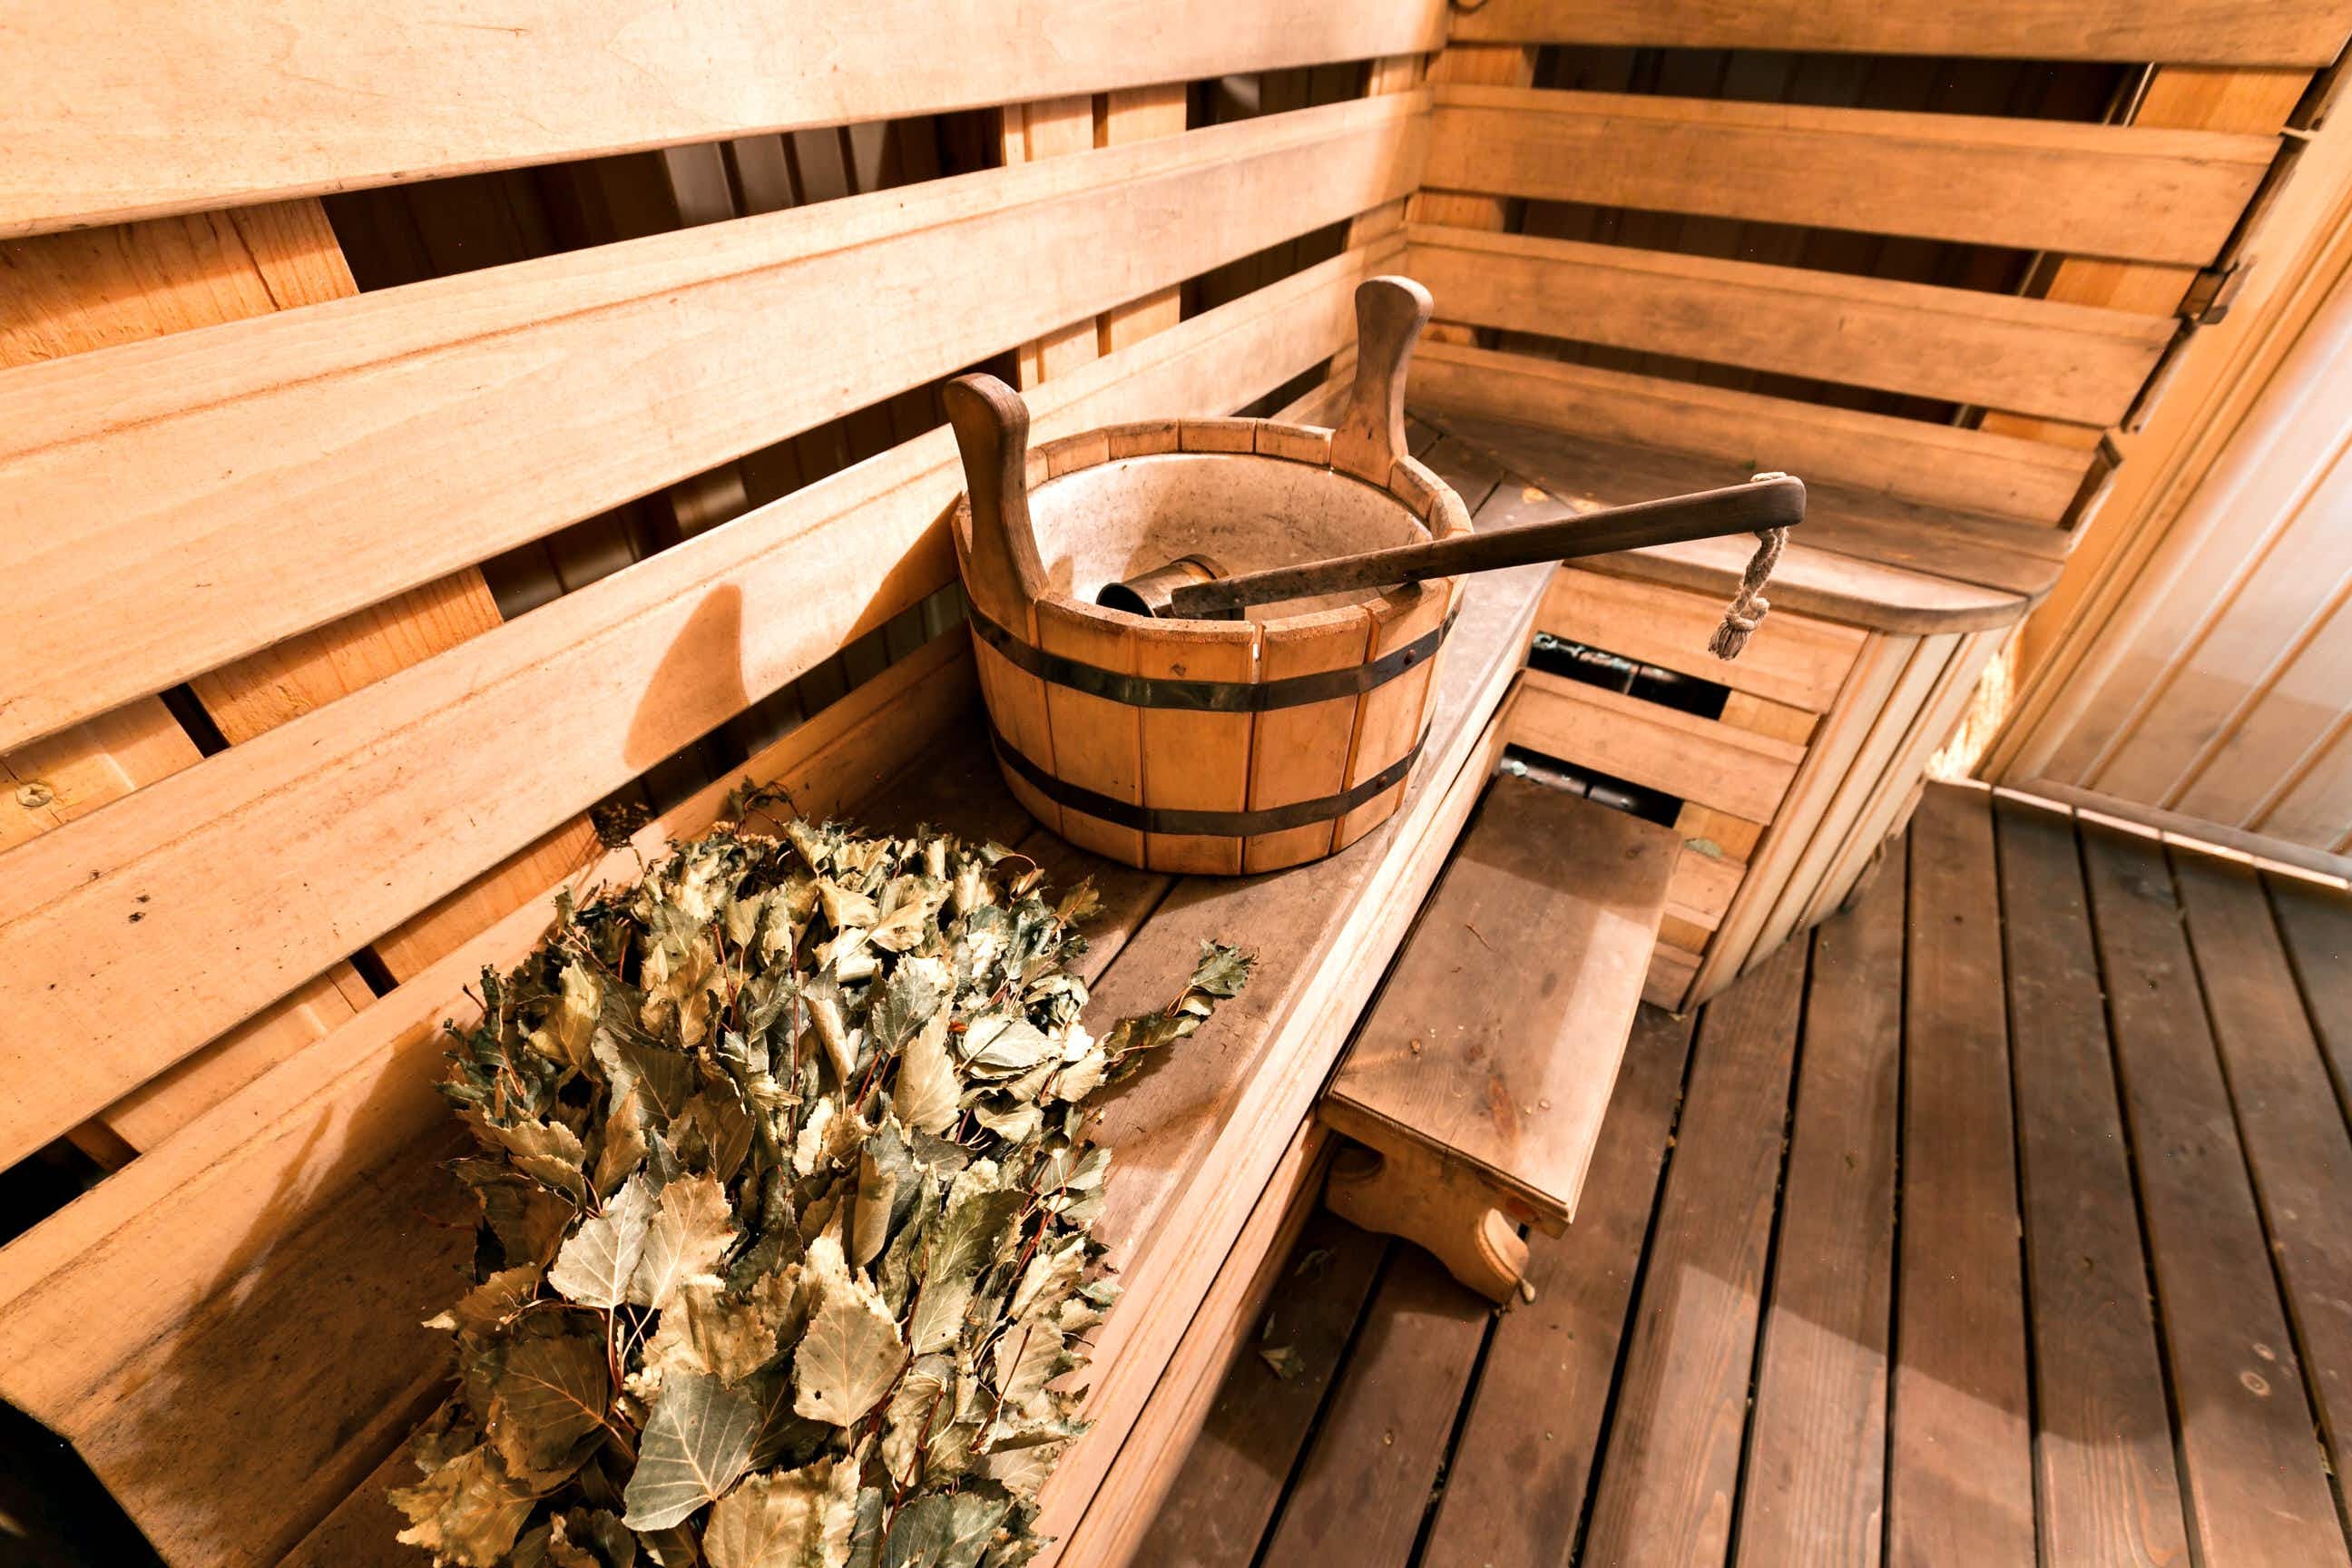 Some like it hot: discovering Finland's sauna culture